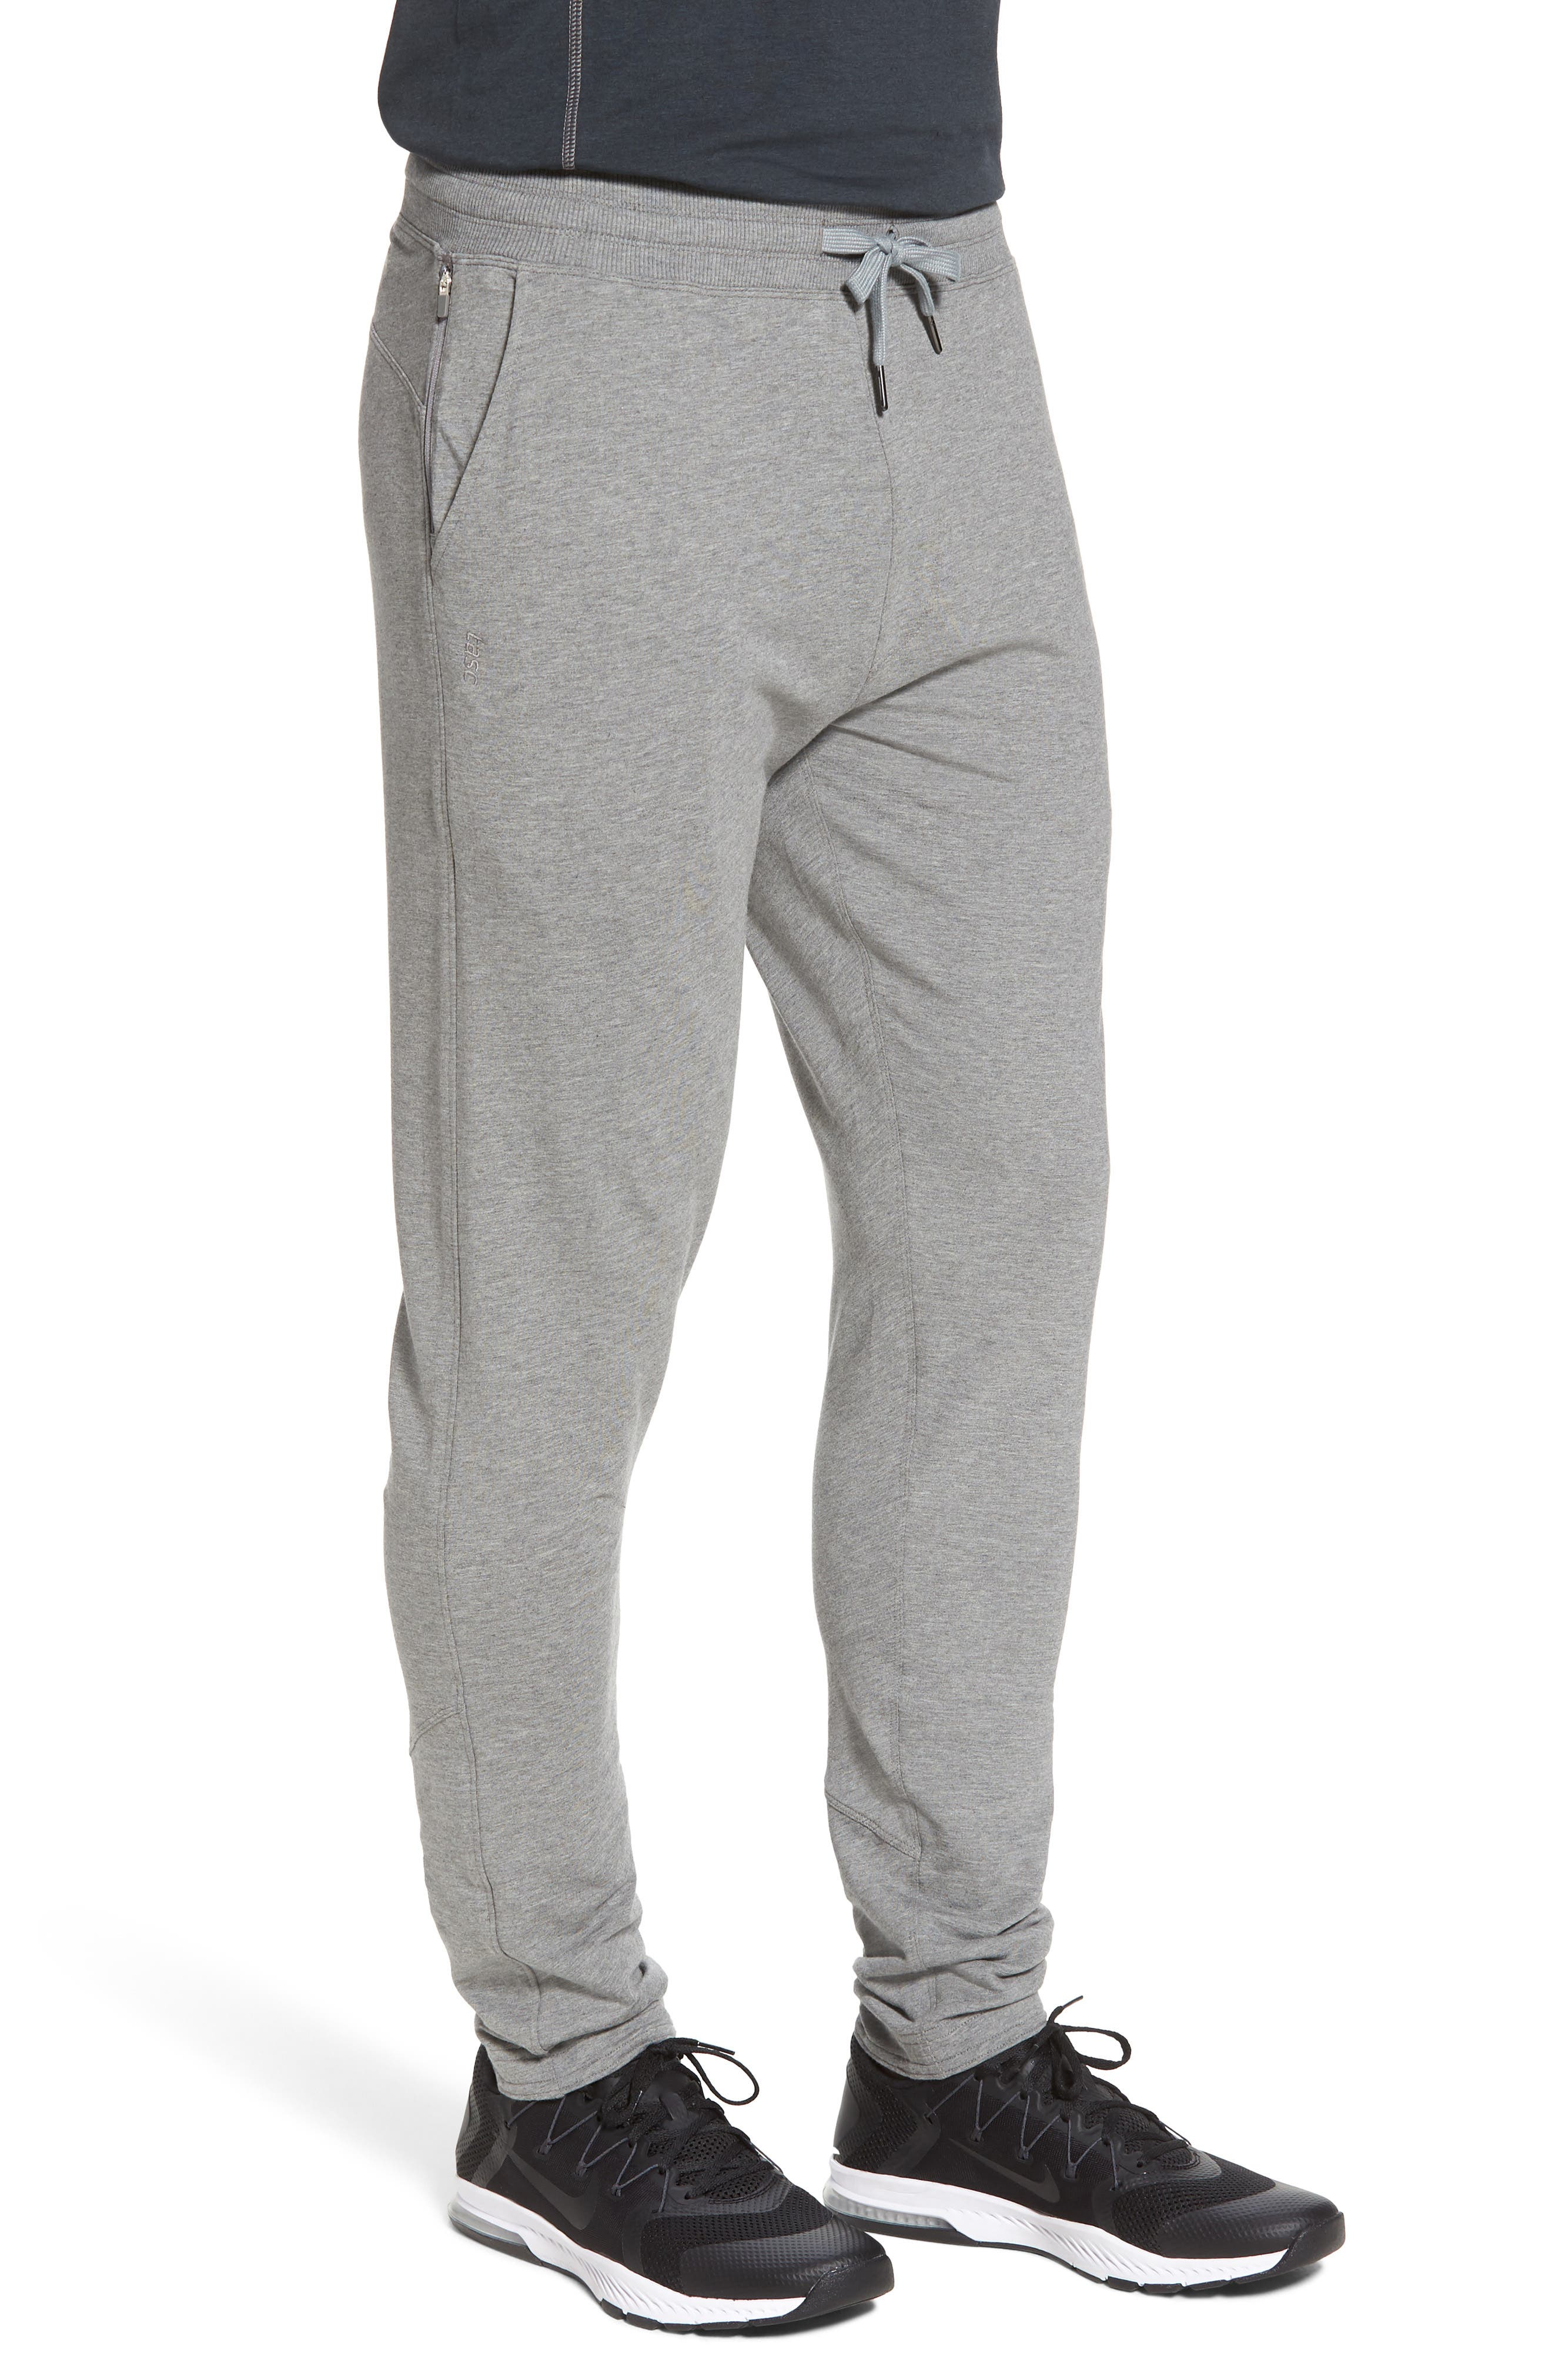 Legacy Lounge Pants,                             Alternate thumbnail 3, color,                             059